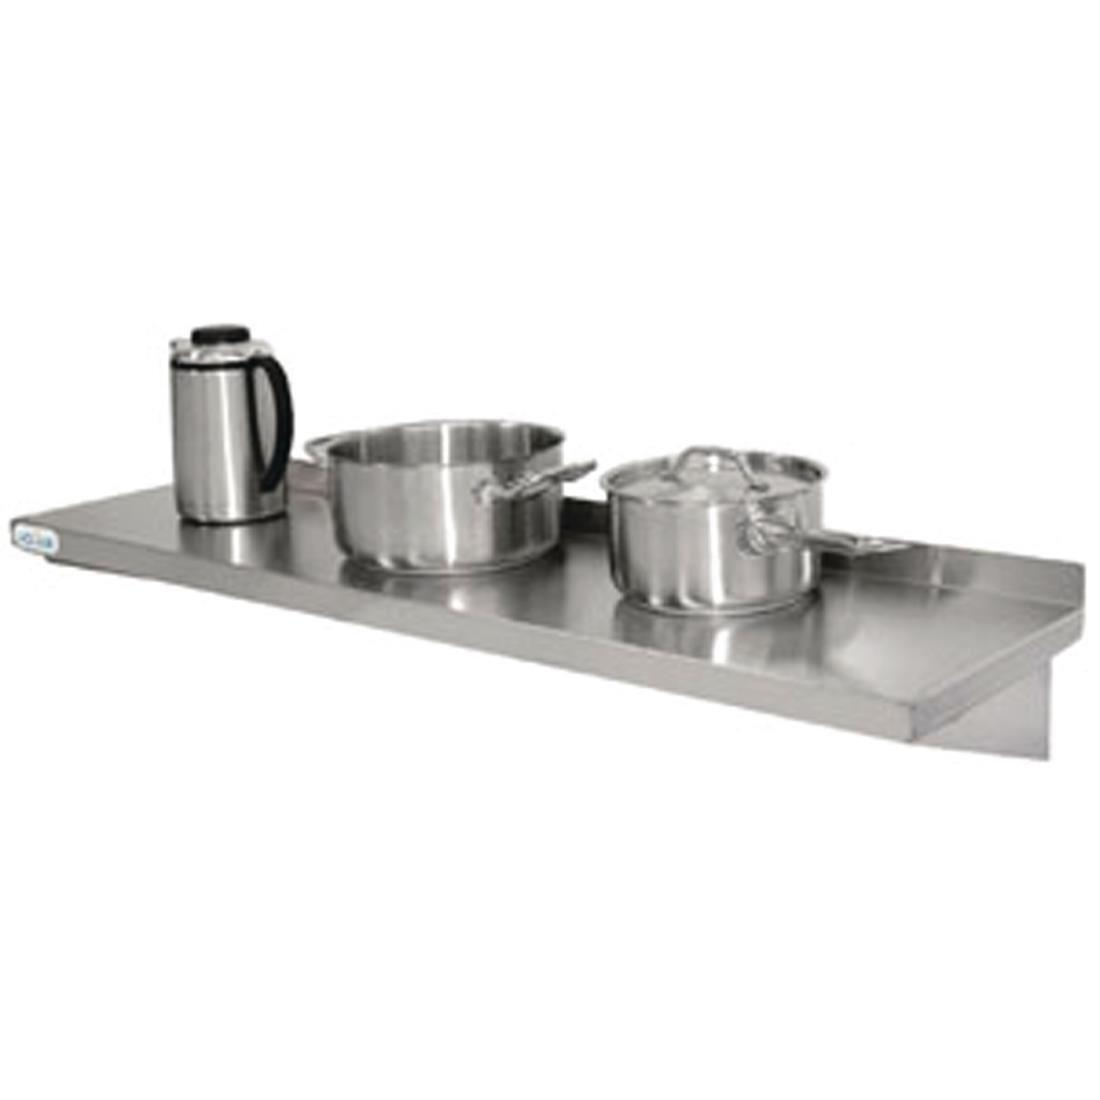 Y751 - Stainless Steel Kitchen Shelf